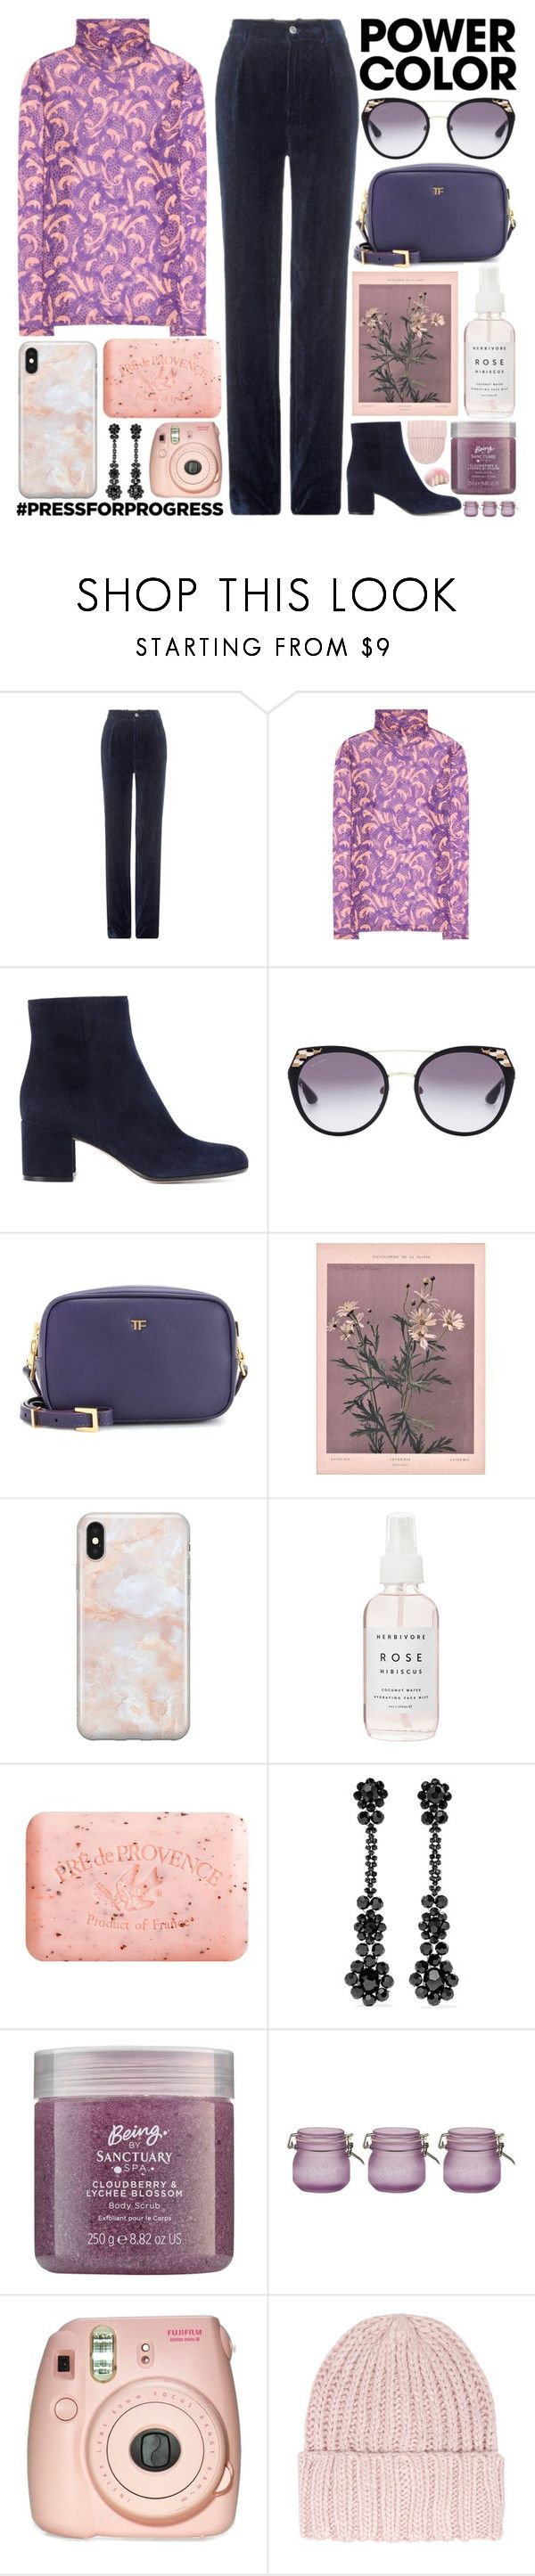 """""""I'm in your arms that waited for me for such a long time."""" by pure-and-valuable on Polyvore featuring Gucci, Dries Van Noten, Gianvito Rossi, Tom Ford, Recover, Herbivore, Pré de Provence, Simone Rocha, Kilner and Fujifilm"""